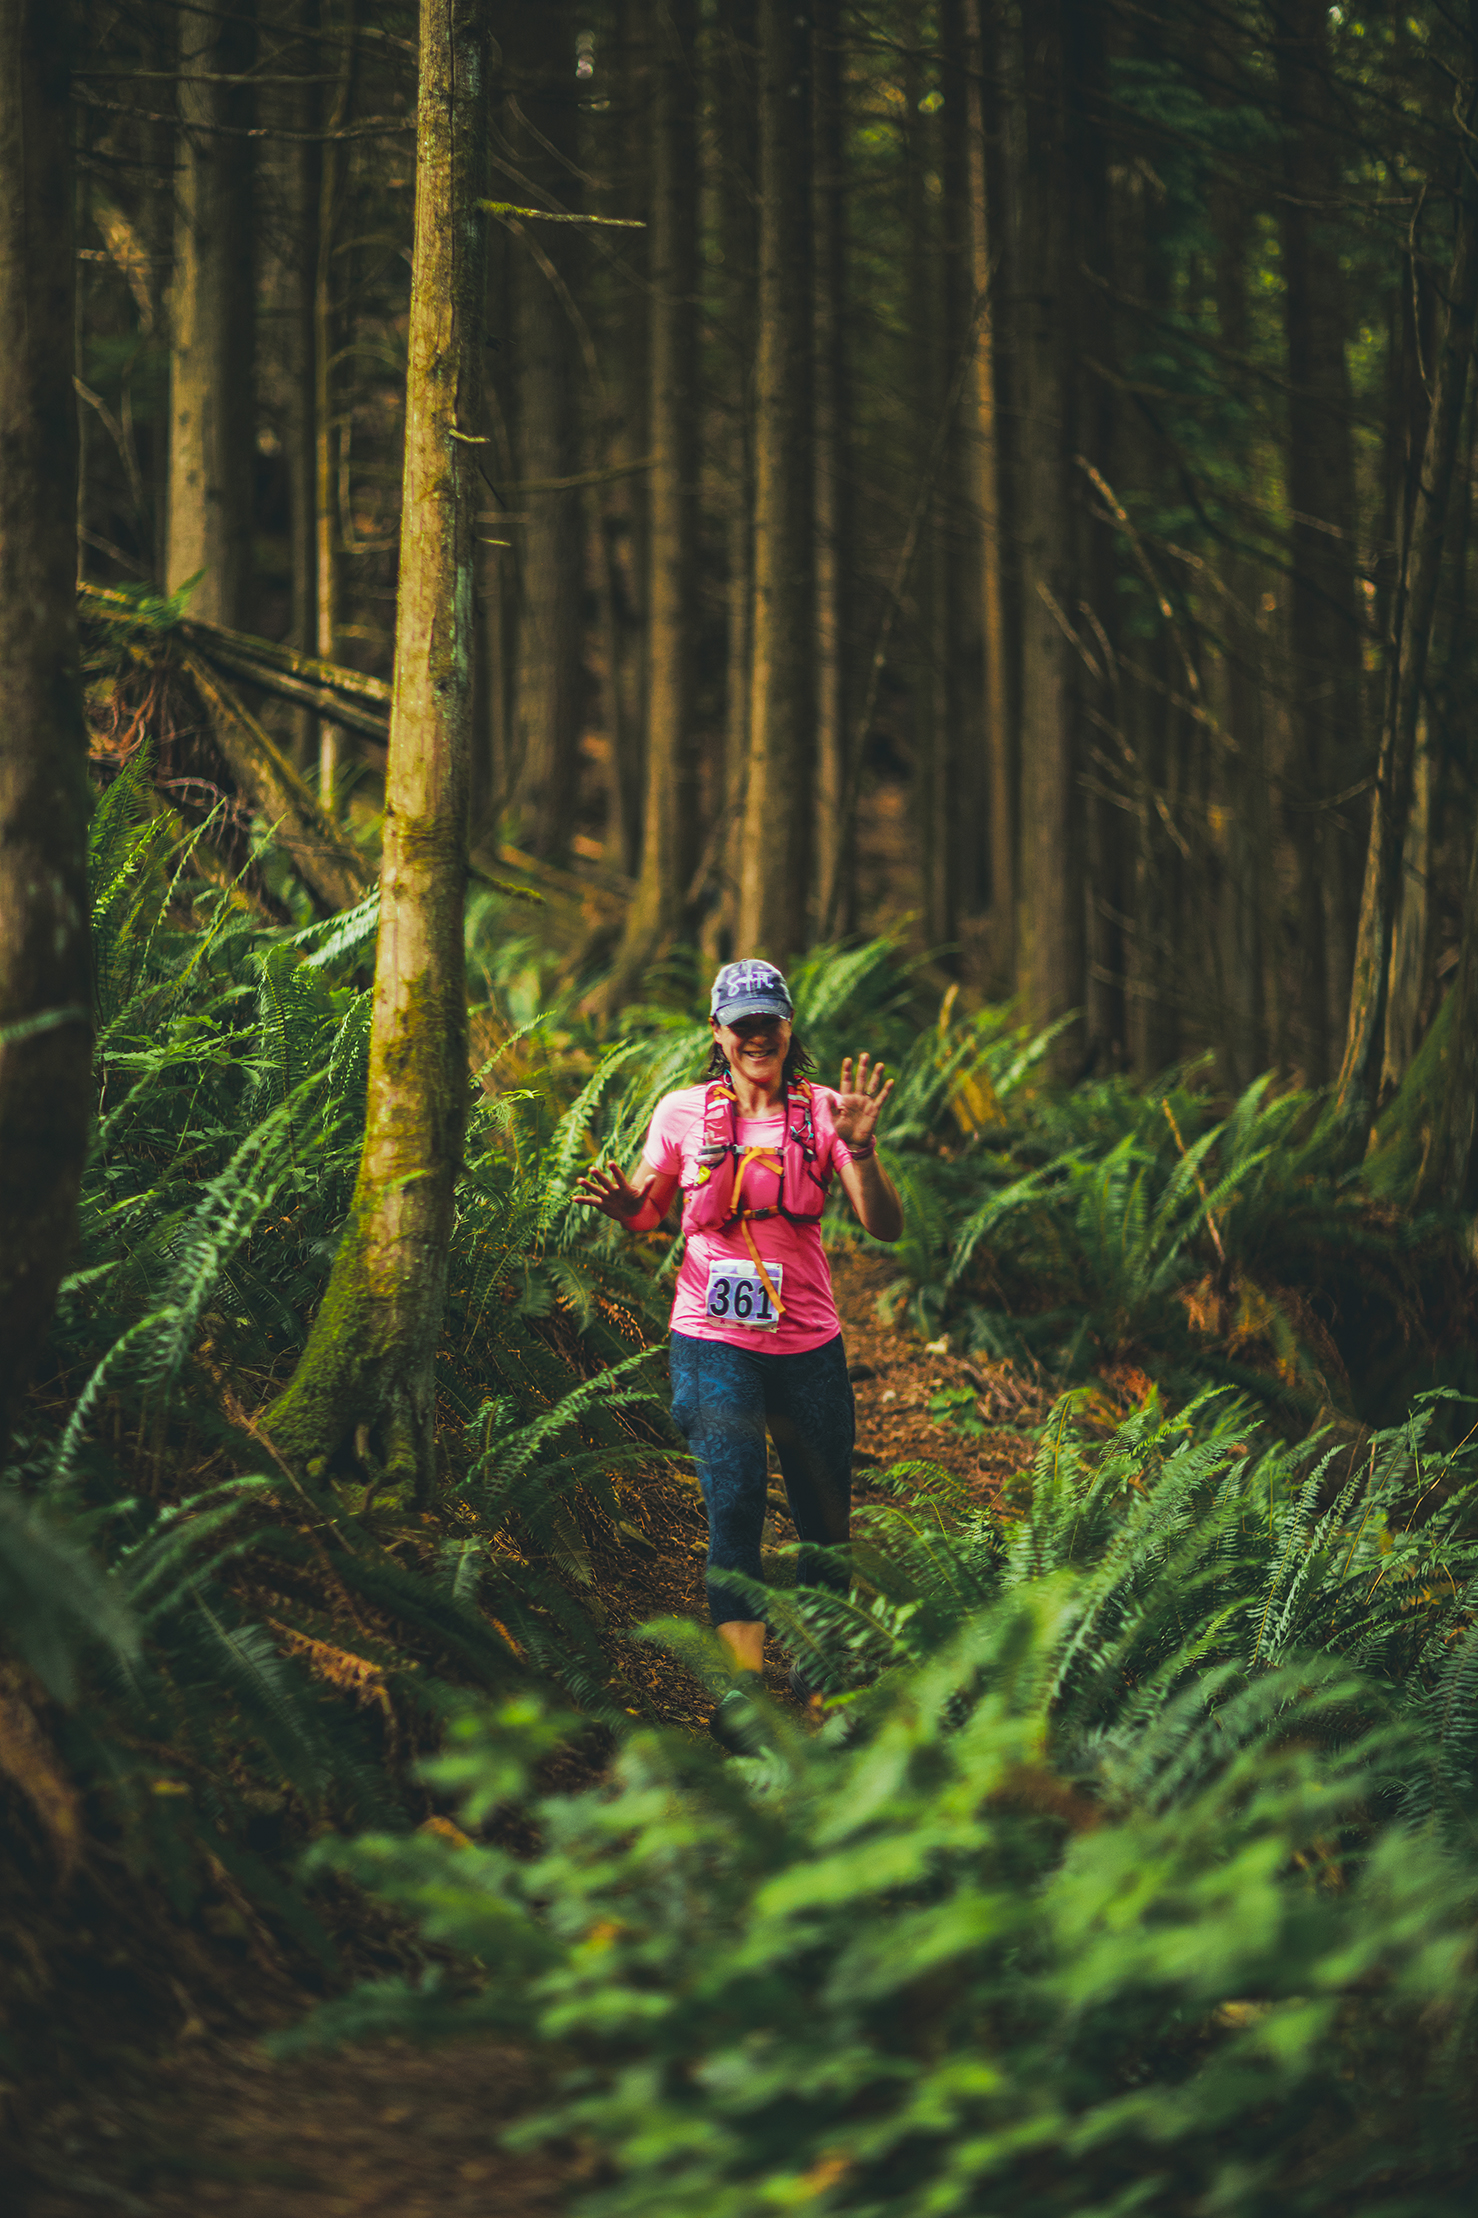 Fraser Valley Trail Races - Bear Mountain - IMG2_2335 by  Brice Ferre Studio - Vancouver Portrait Adventure and Athlete Photographer.jpg